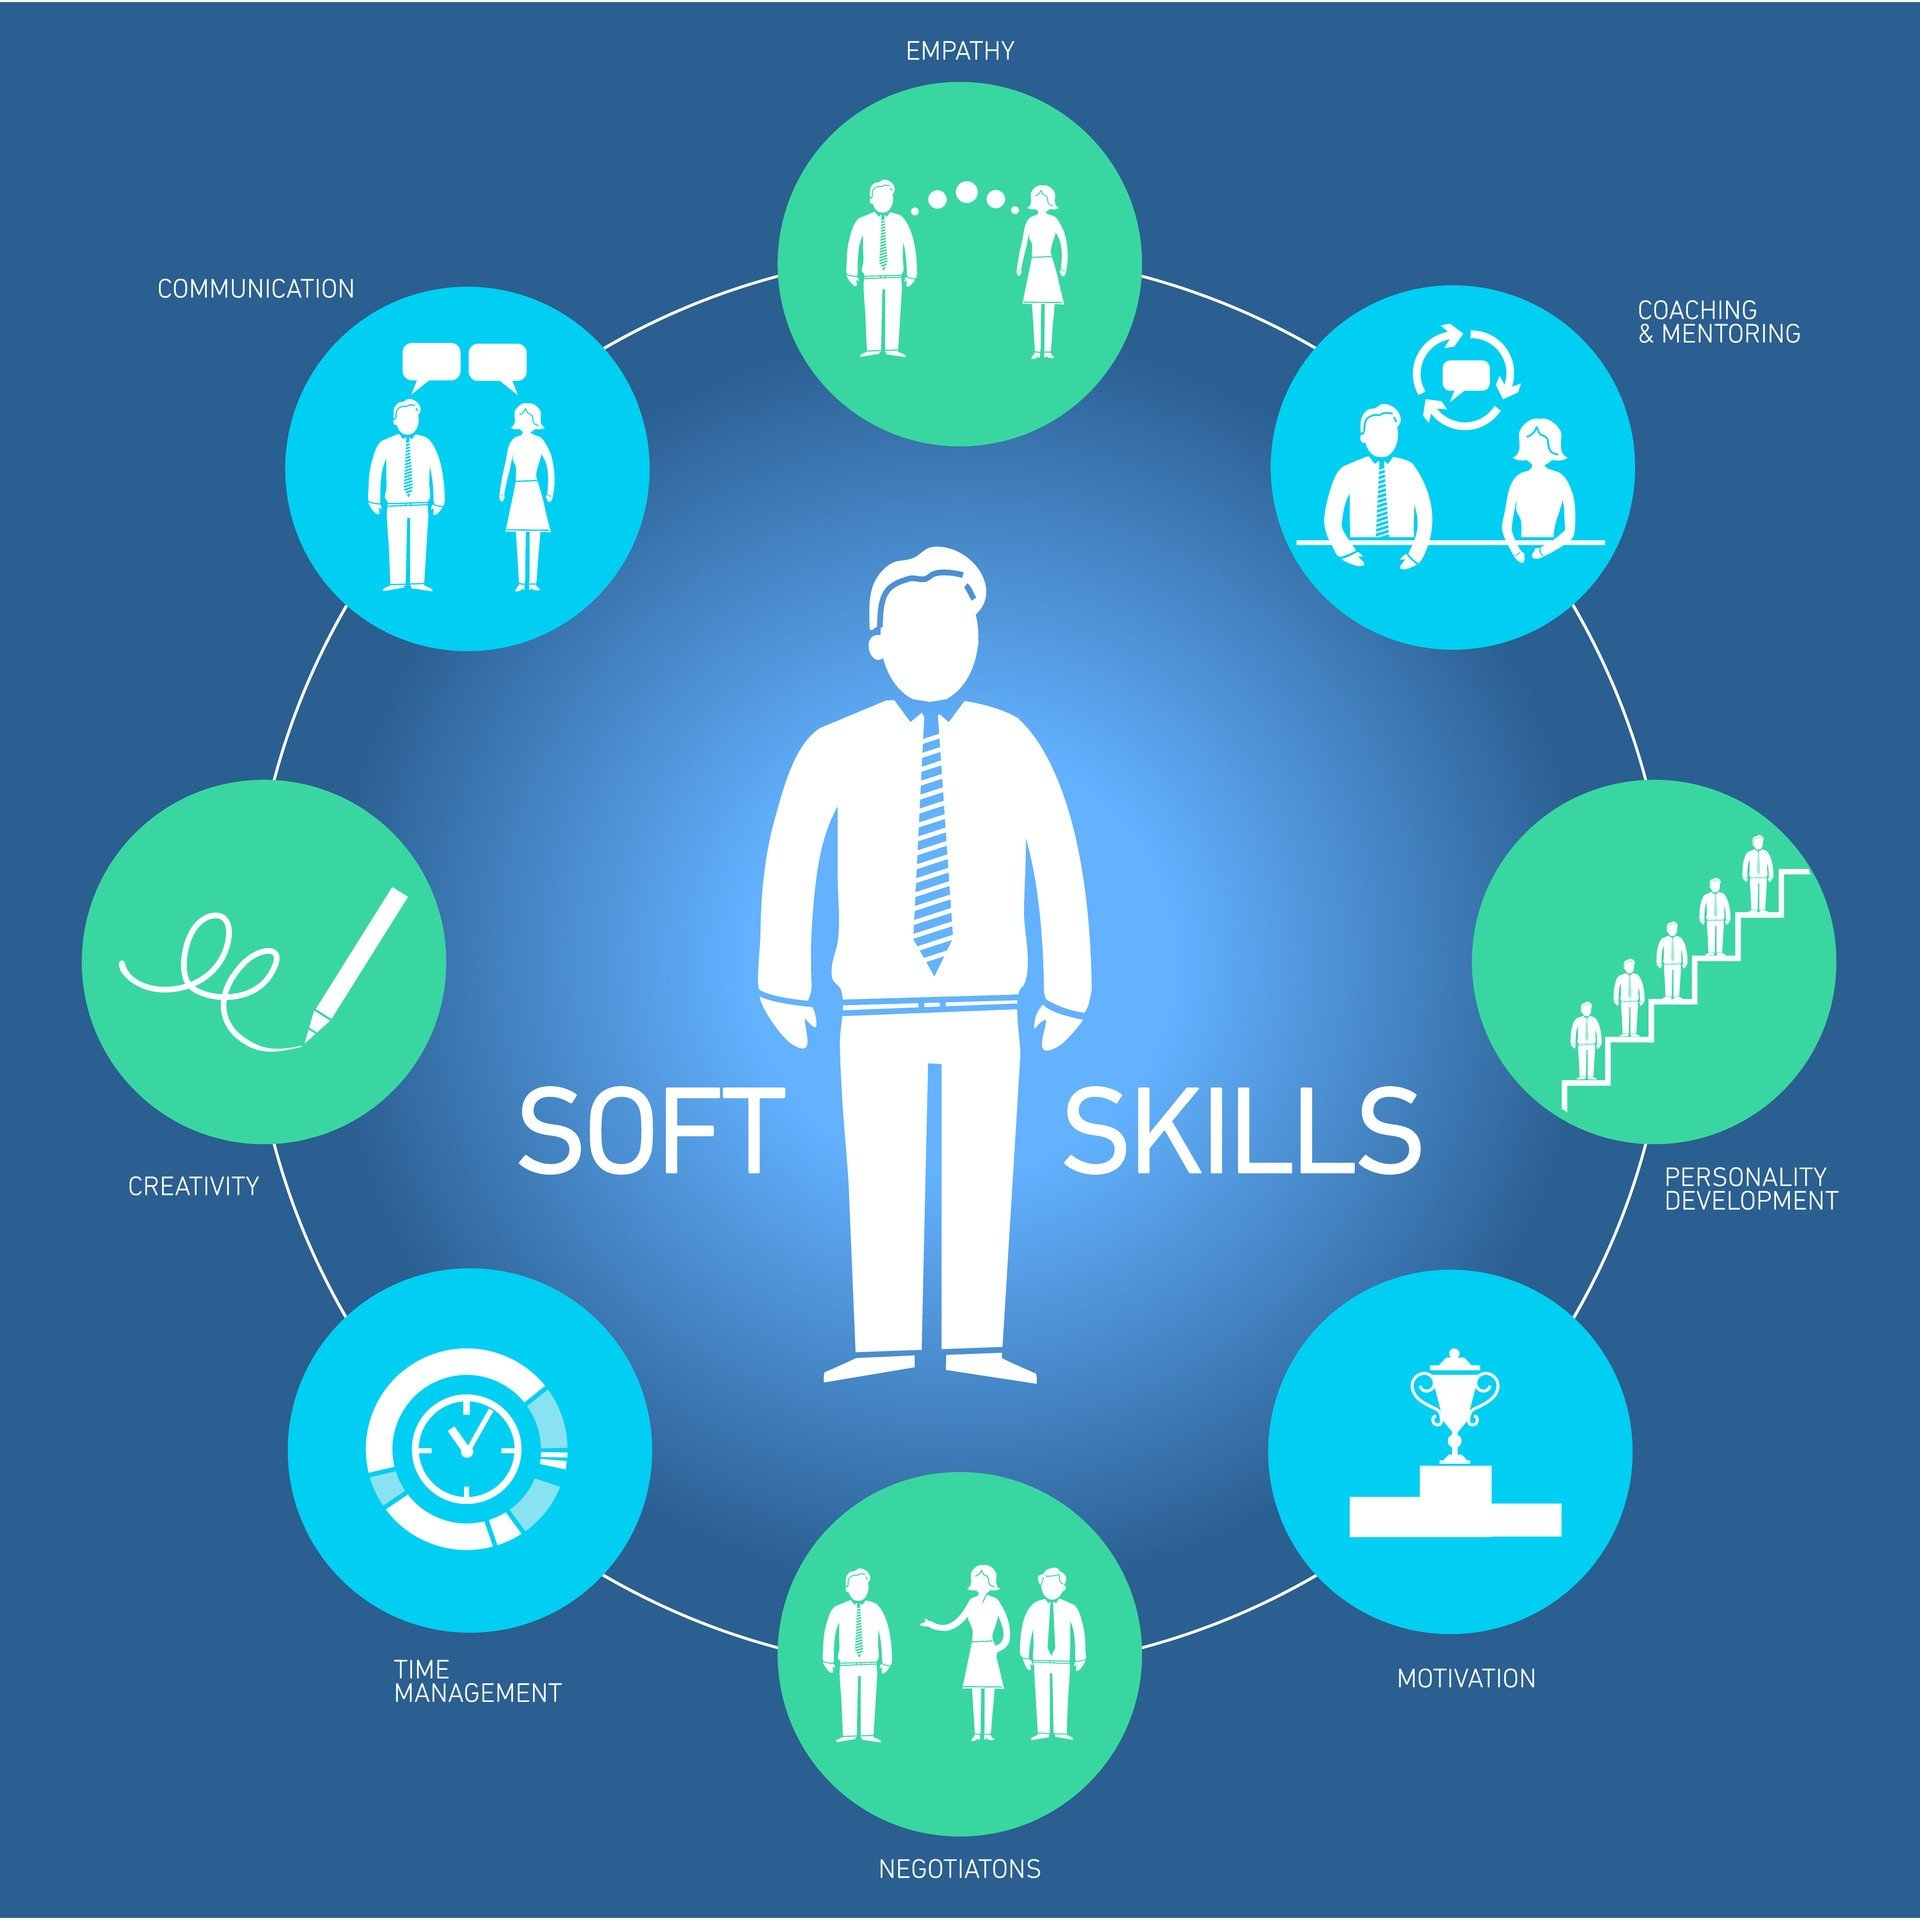 Why Soft Skills Are Key To EVERYONE's Employability And Career Progression  - eLearning Industry